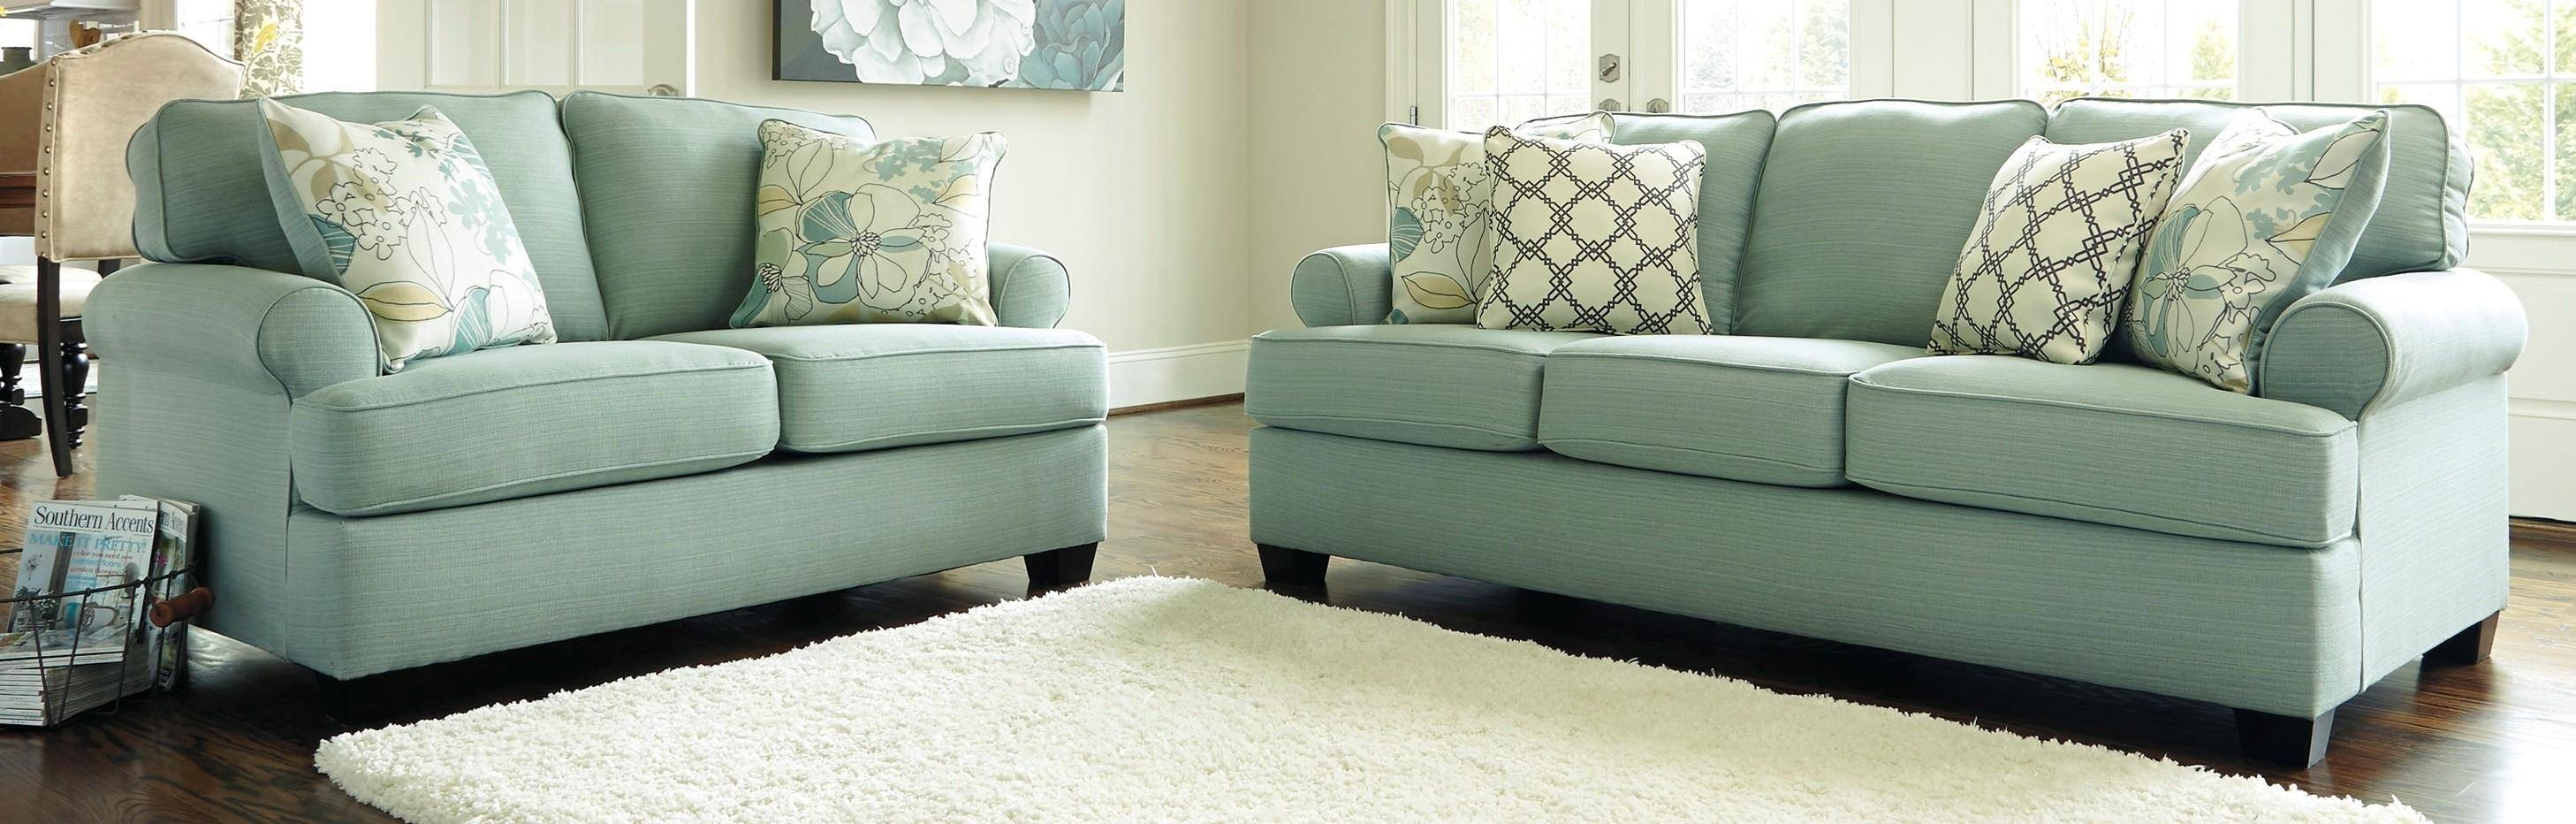 Sofa Ideas: Seafoam Sofas (Explore #8 Of 20 Photos) inside Seafoam Sofas (Image 14 of 15)